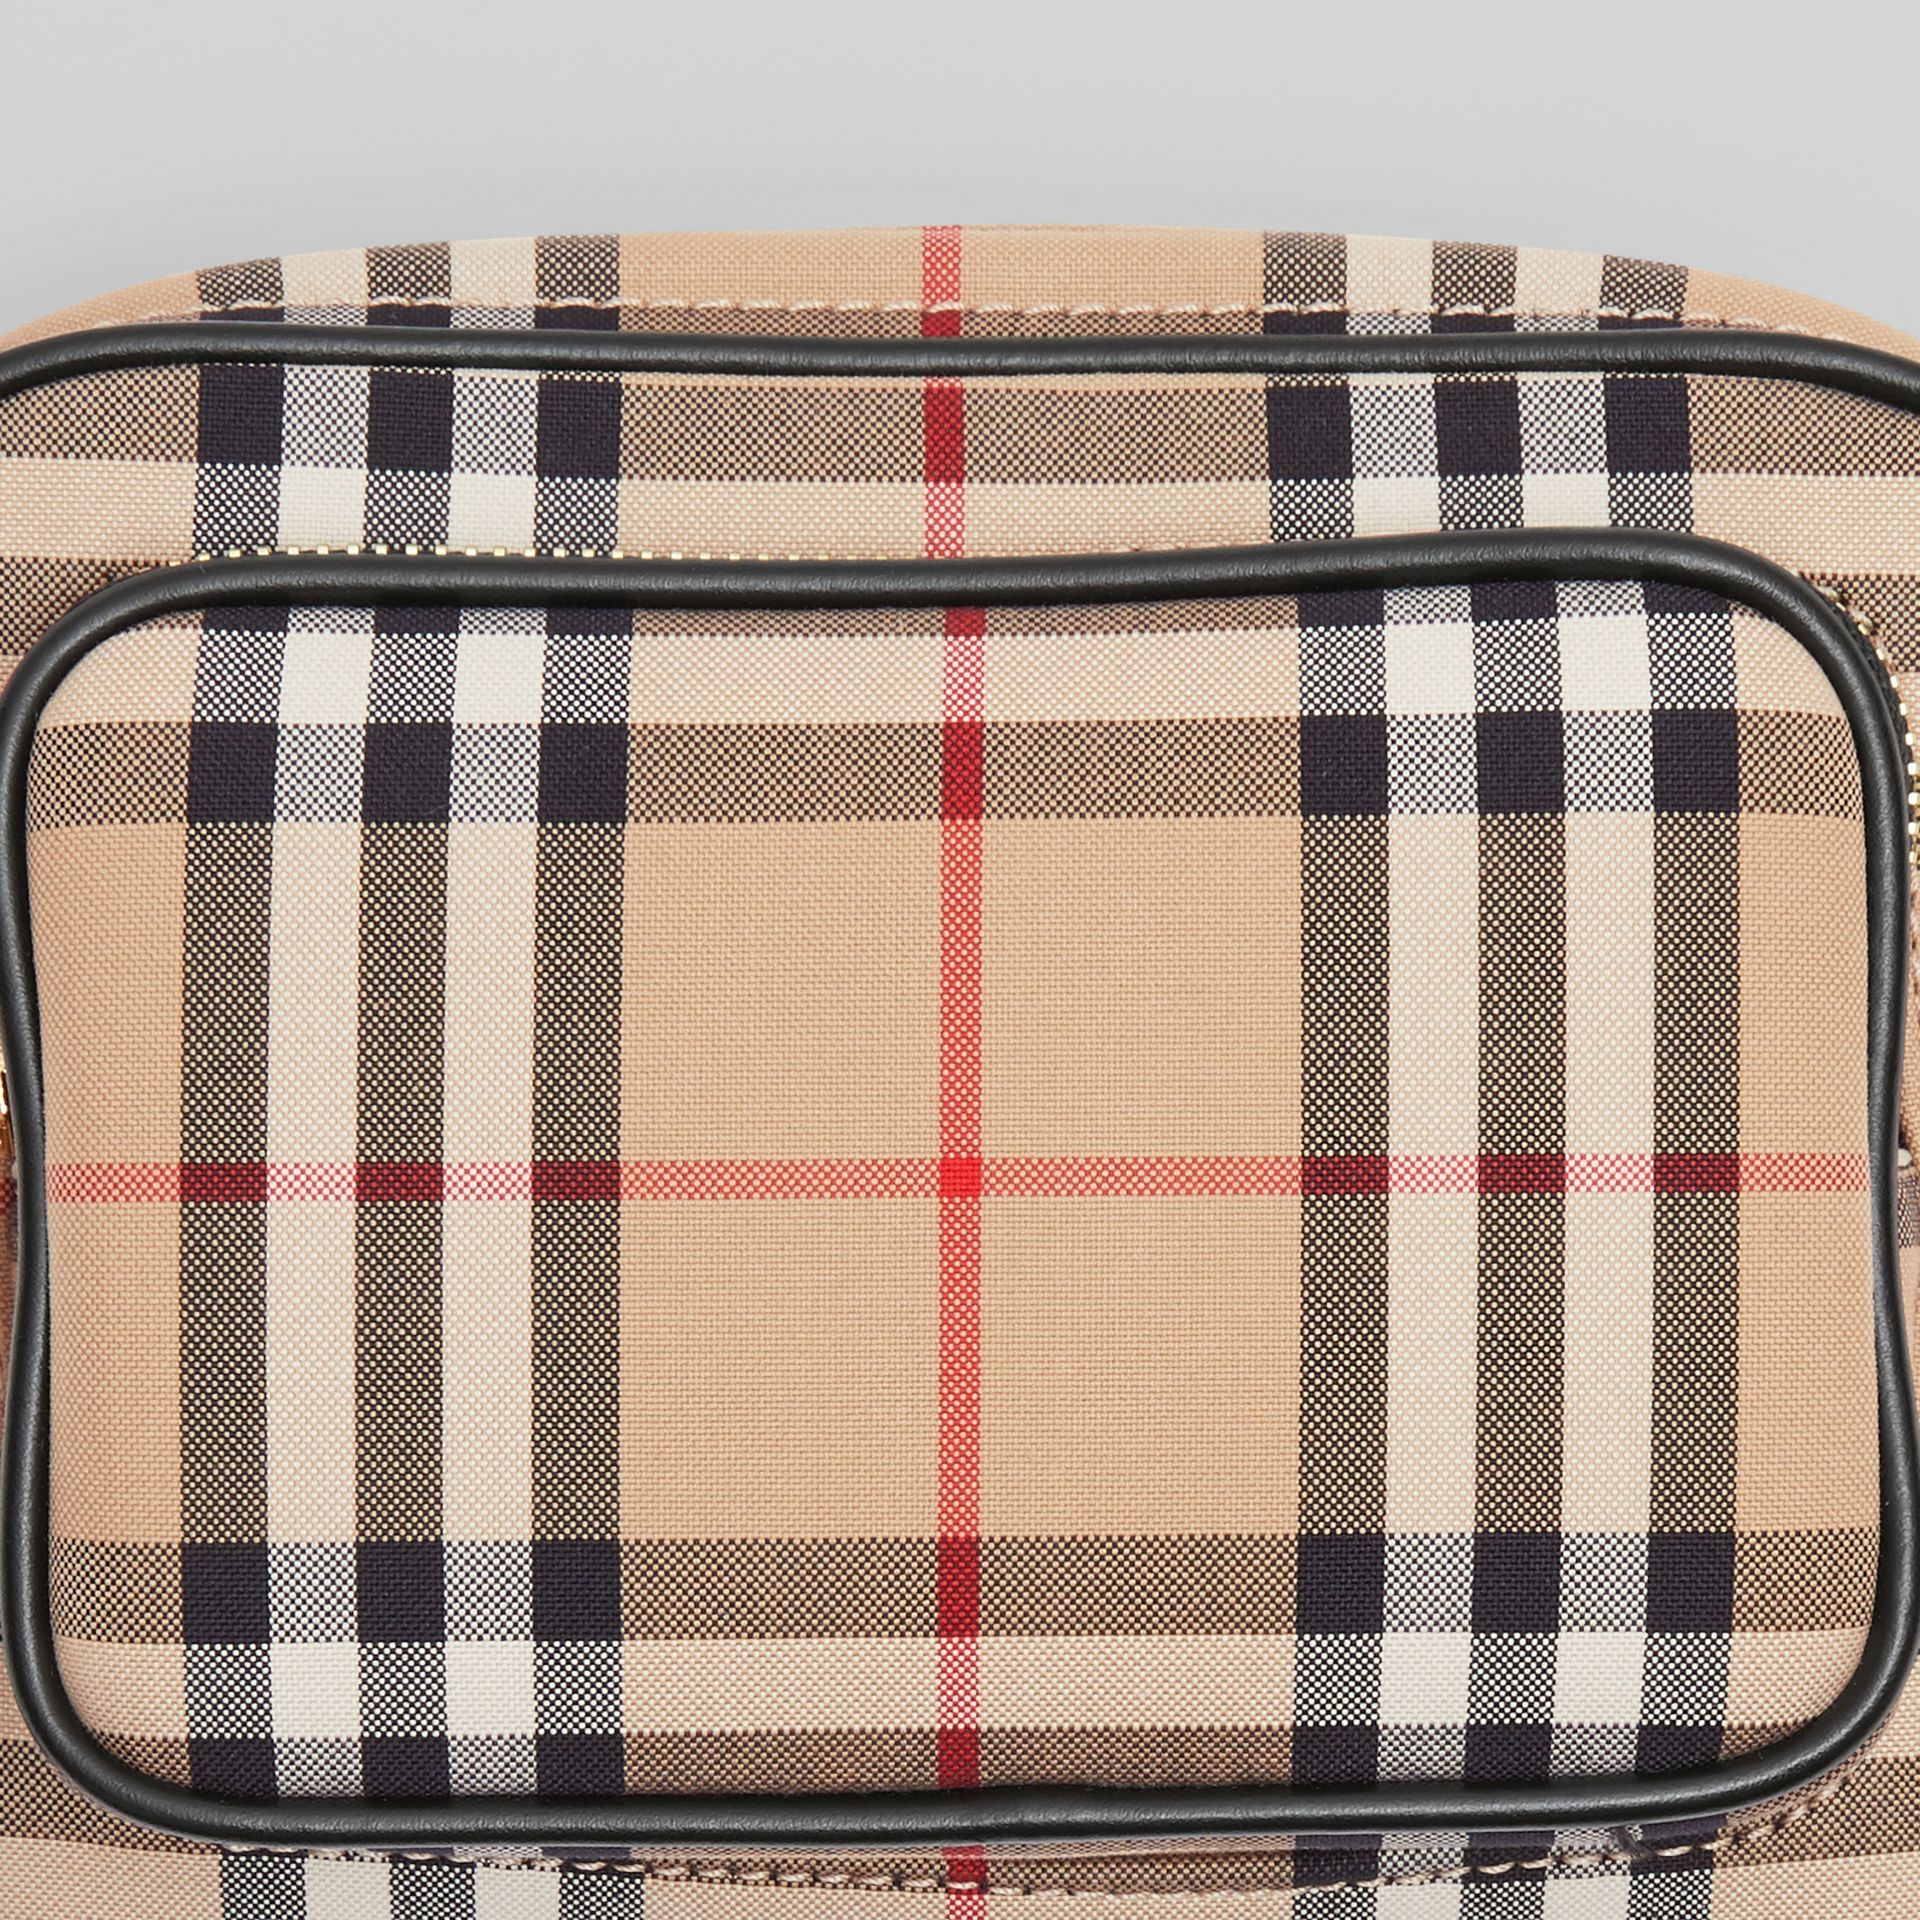 Vintage Check Cotton Camera Bag in Archive Beige - Women | Burberry - gallery image 1